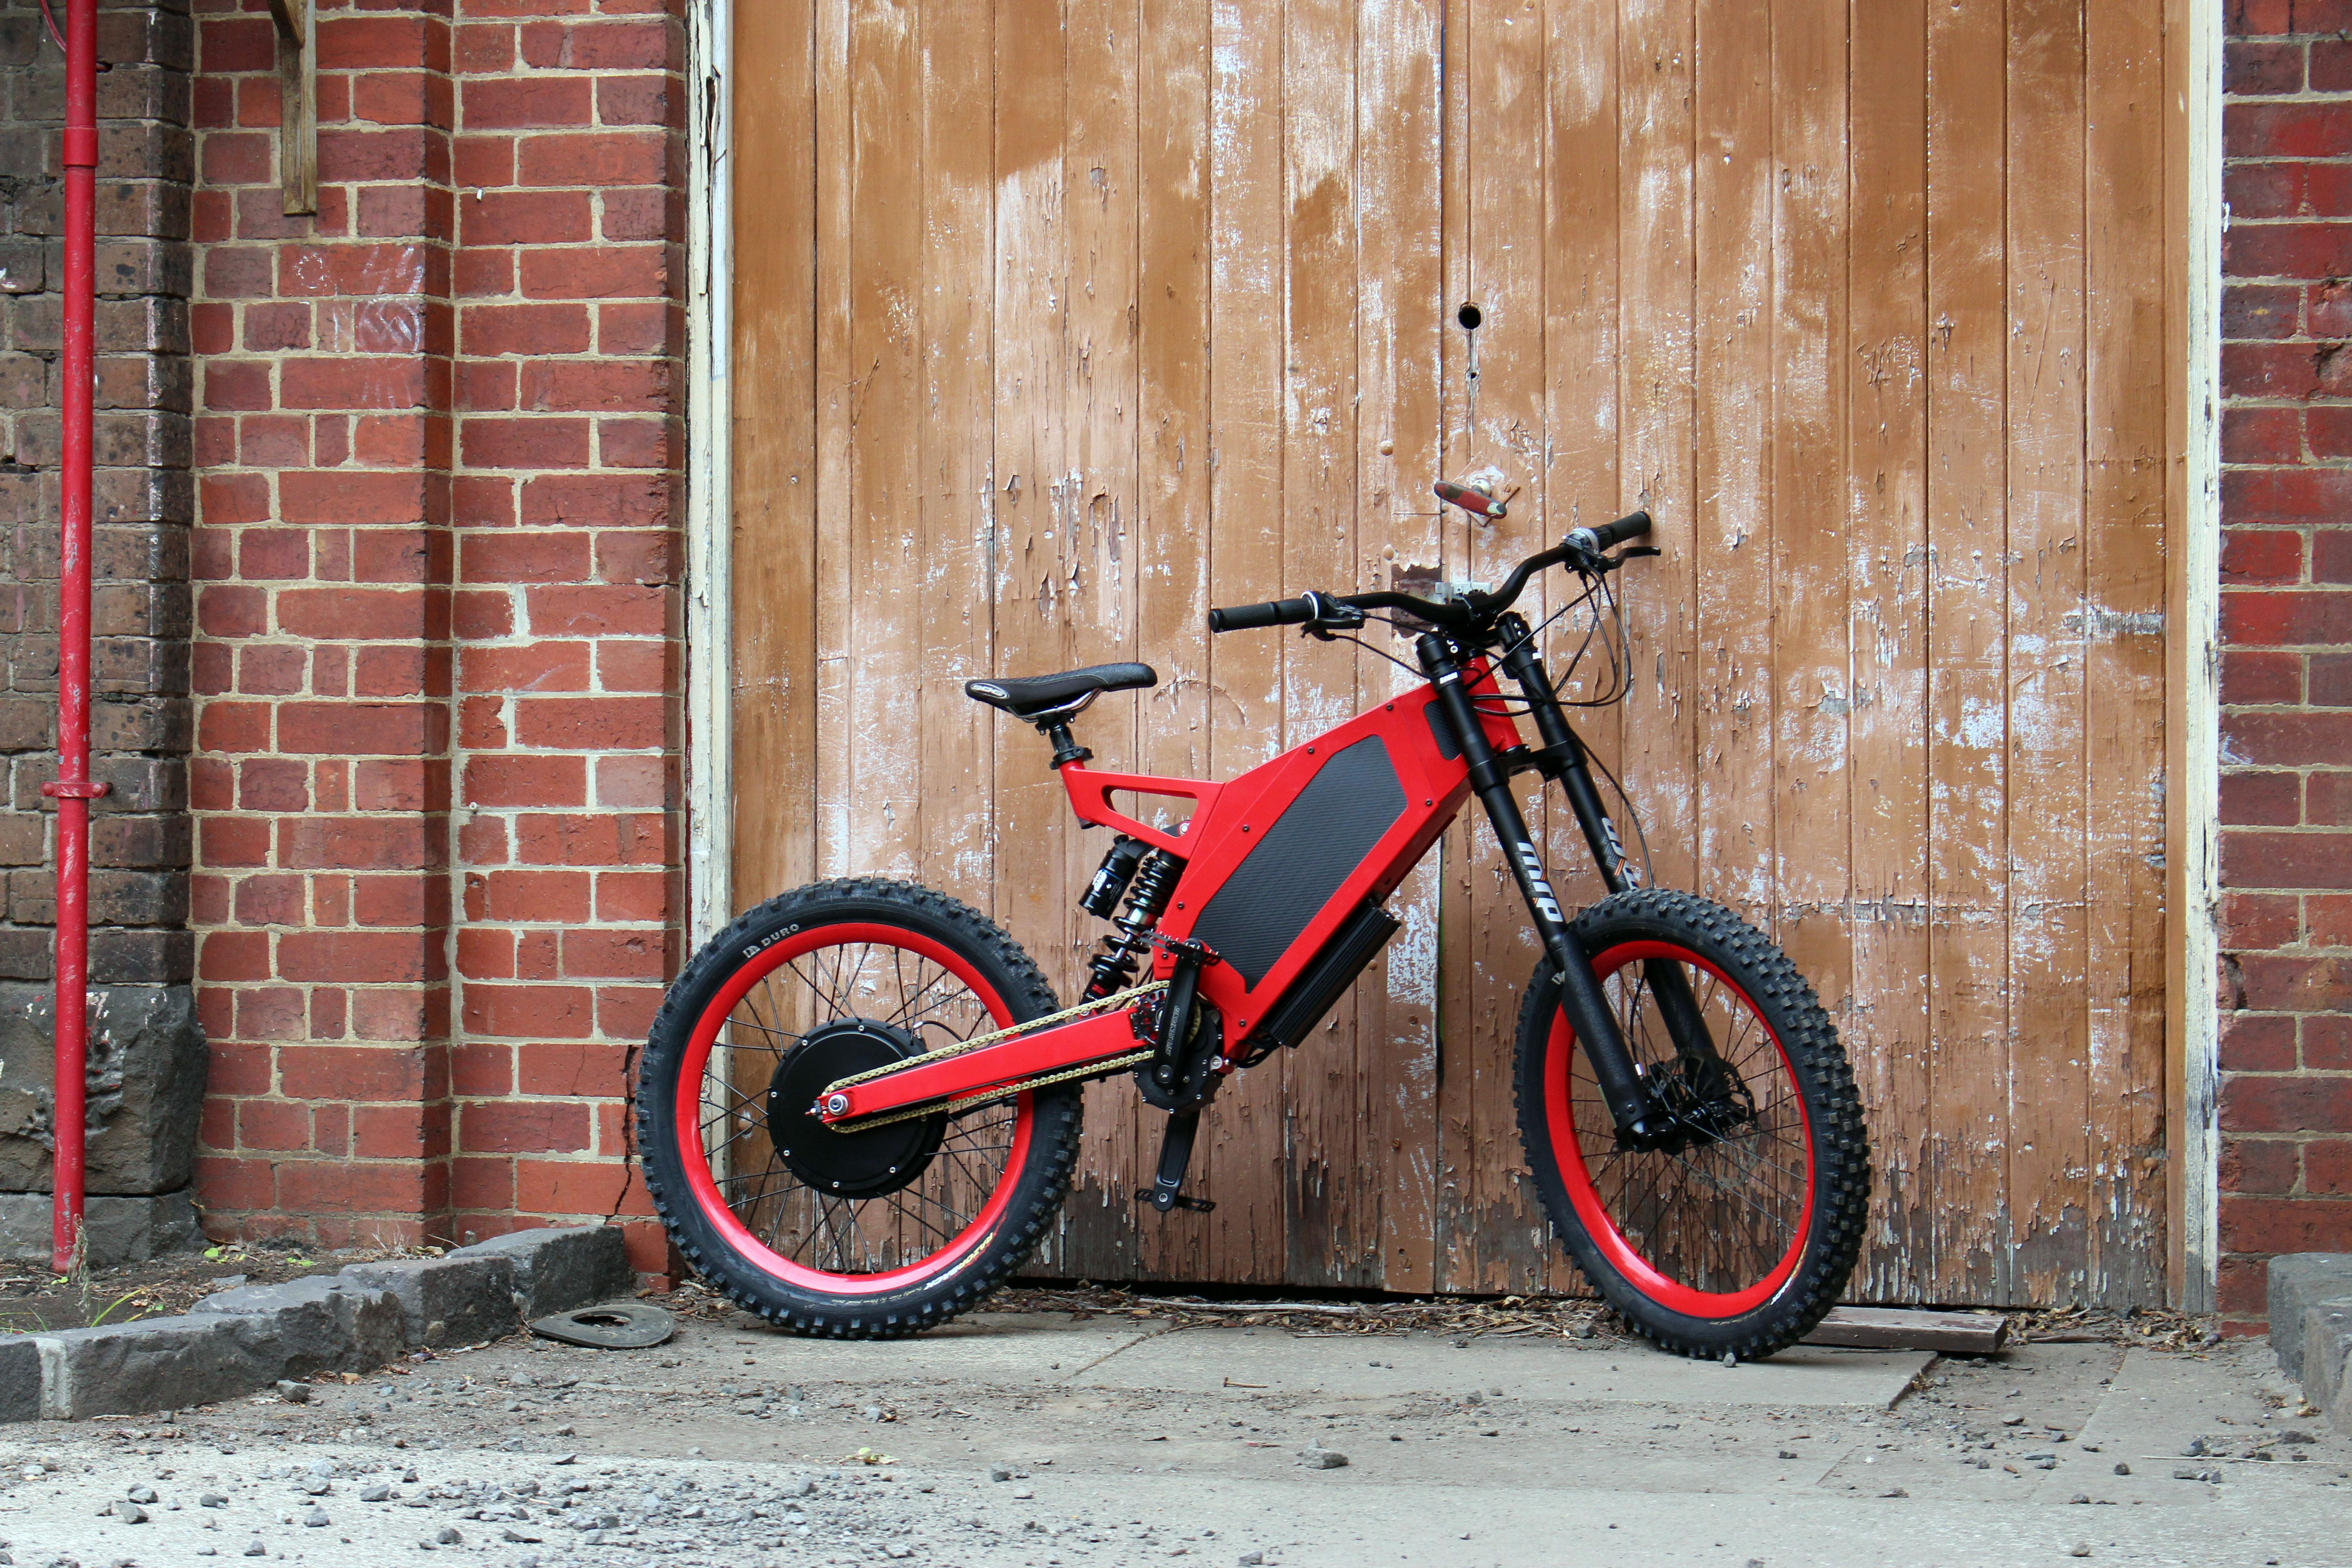 Stealth Electric S Motorcycle And Mountain Bike Hybrid Electric Mountain Bike Electric Motorcycle Electric Bike